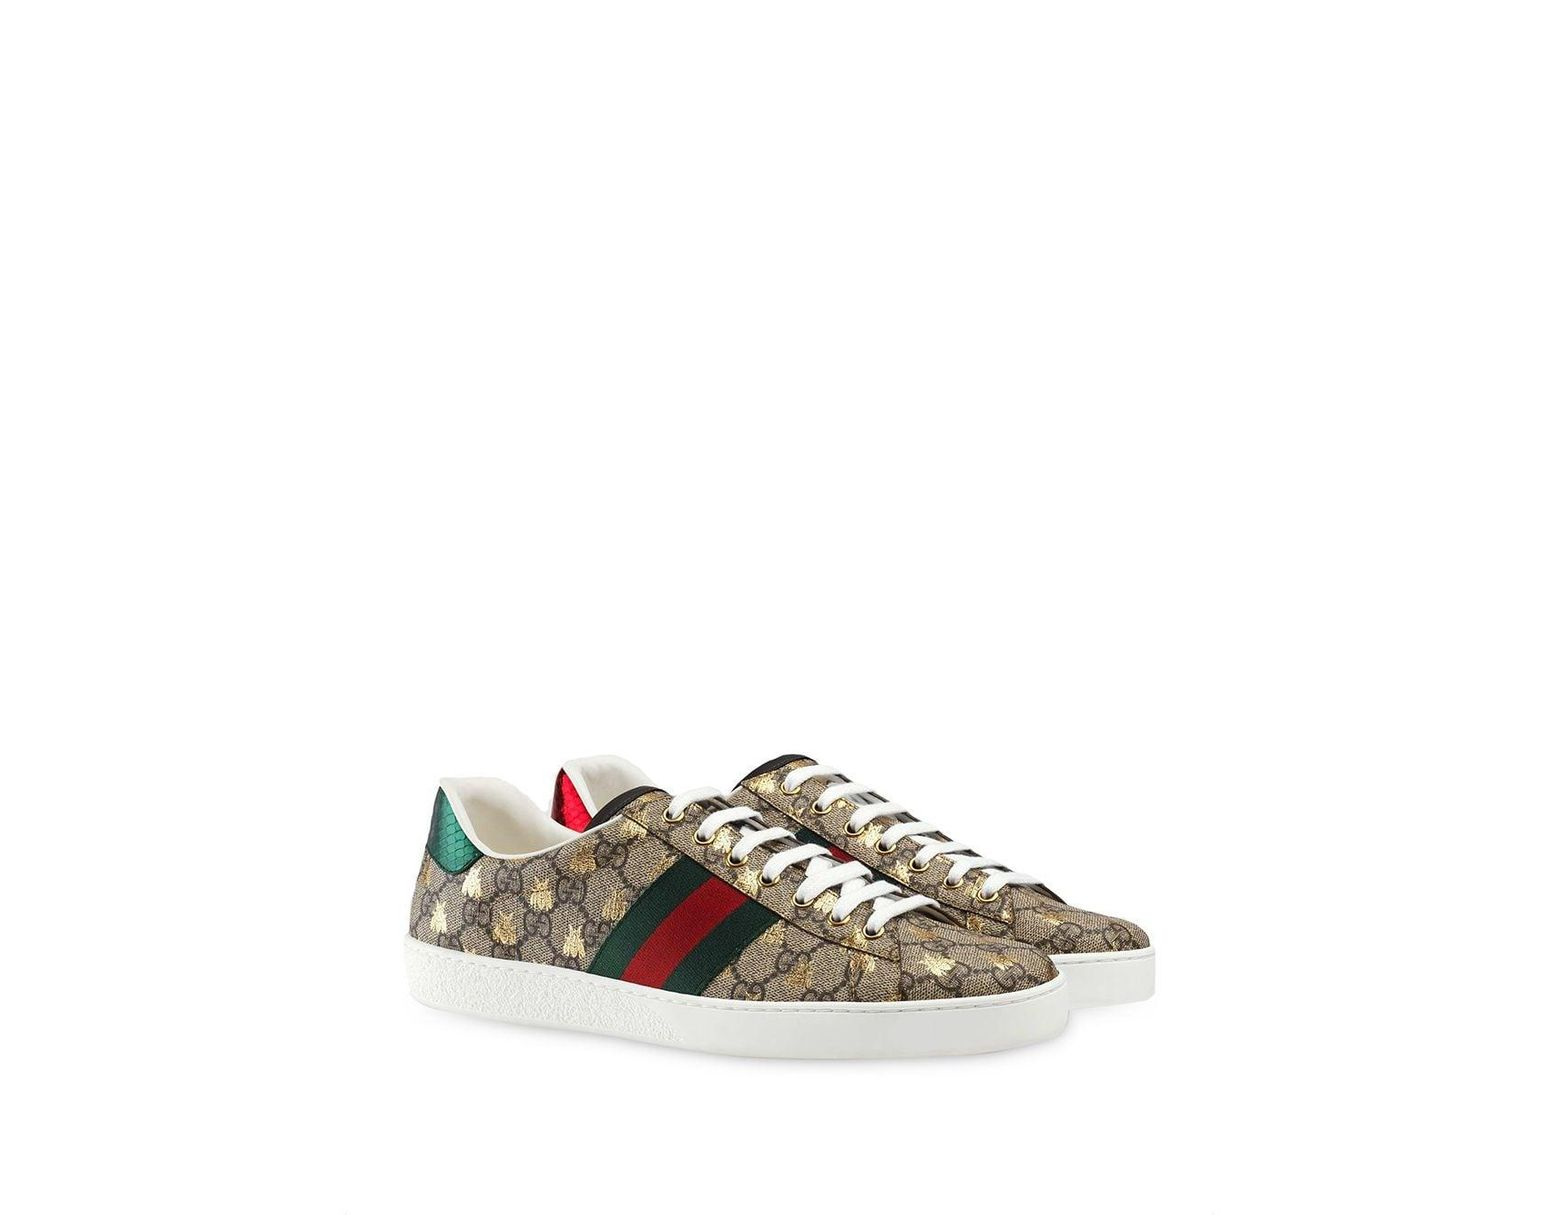 146de8b5b Gucci Ace GG Supreme Bees Sneakers for Men - Save 31% - Lyst